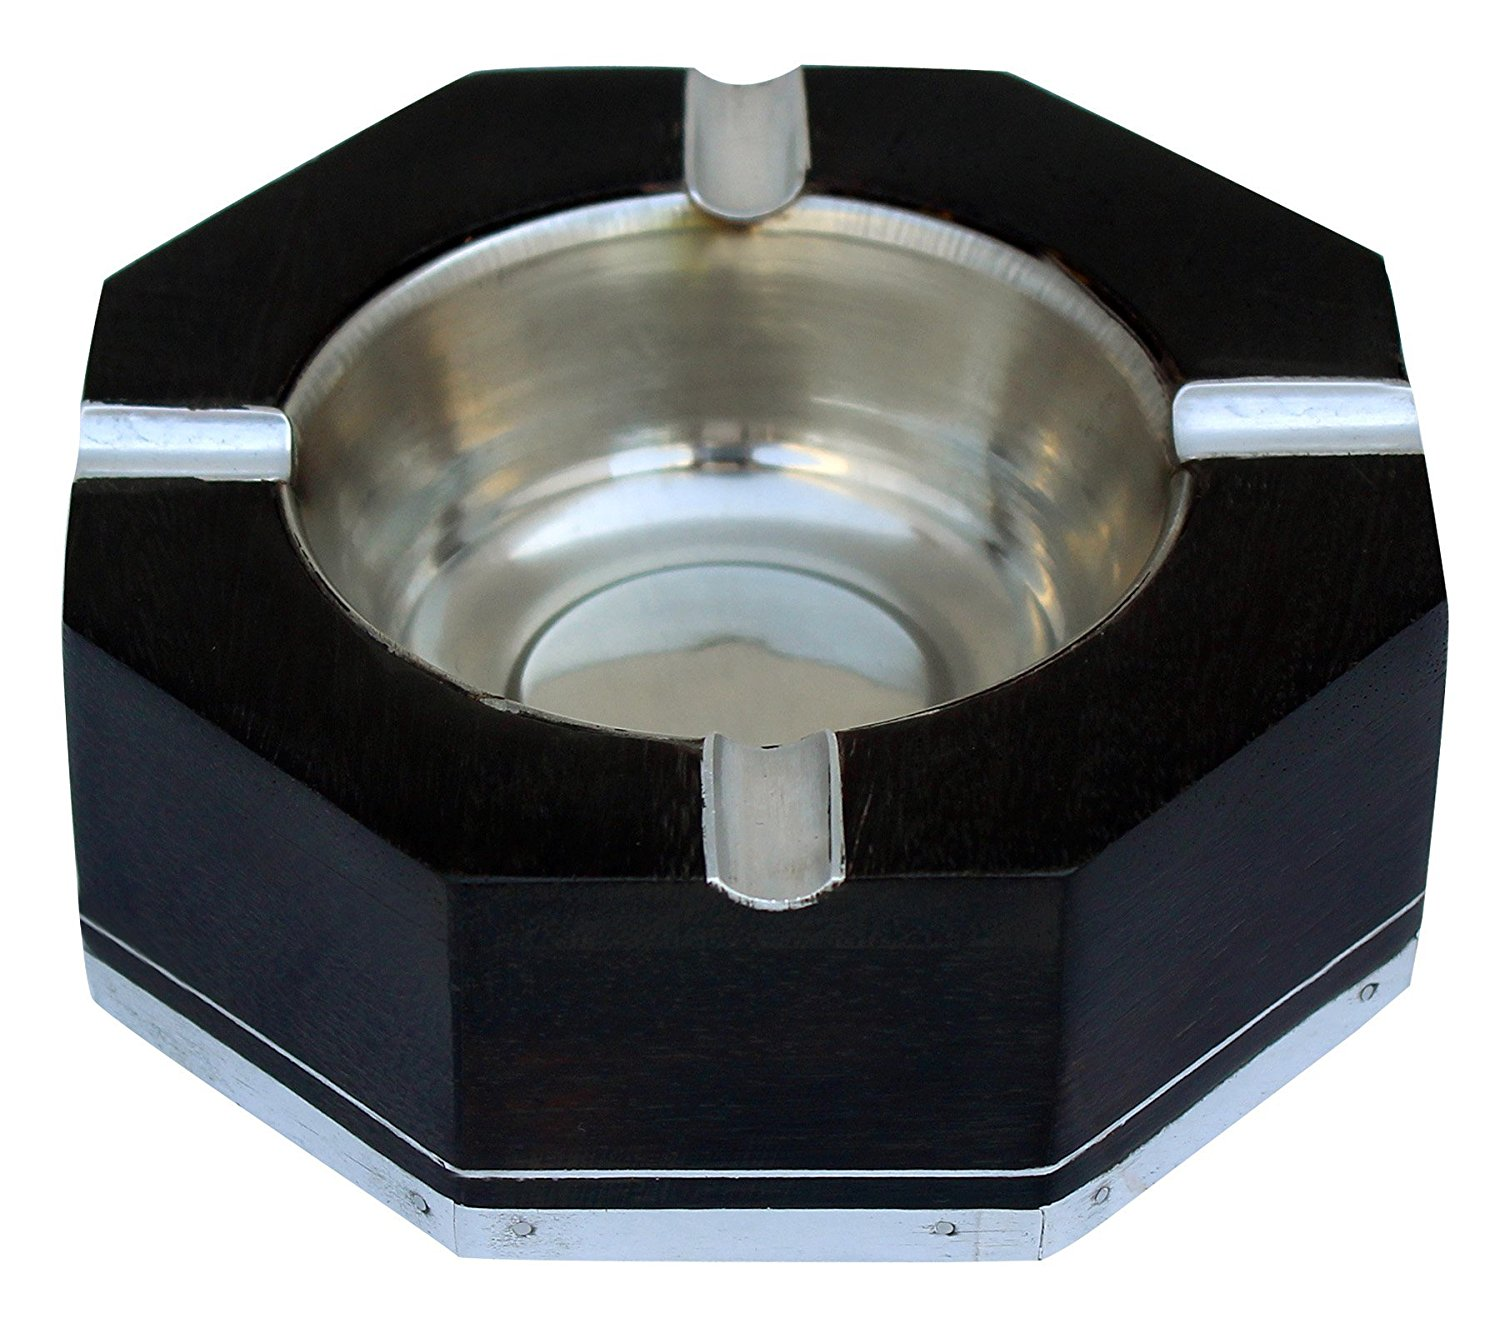 Baoblaze Car Front Ash Tray Insert Box Ashtray Replacement for Audi A4 S4 A5//S5 Q5 A5 S5